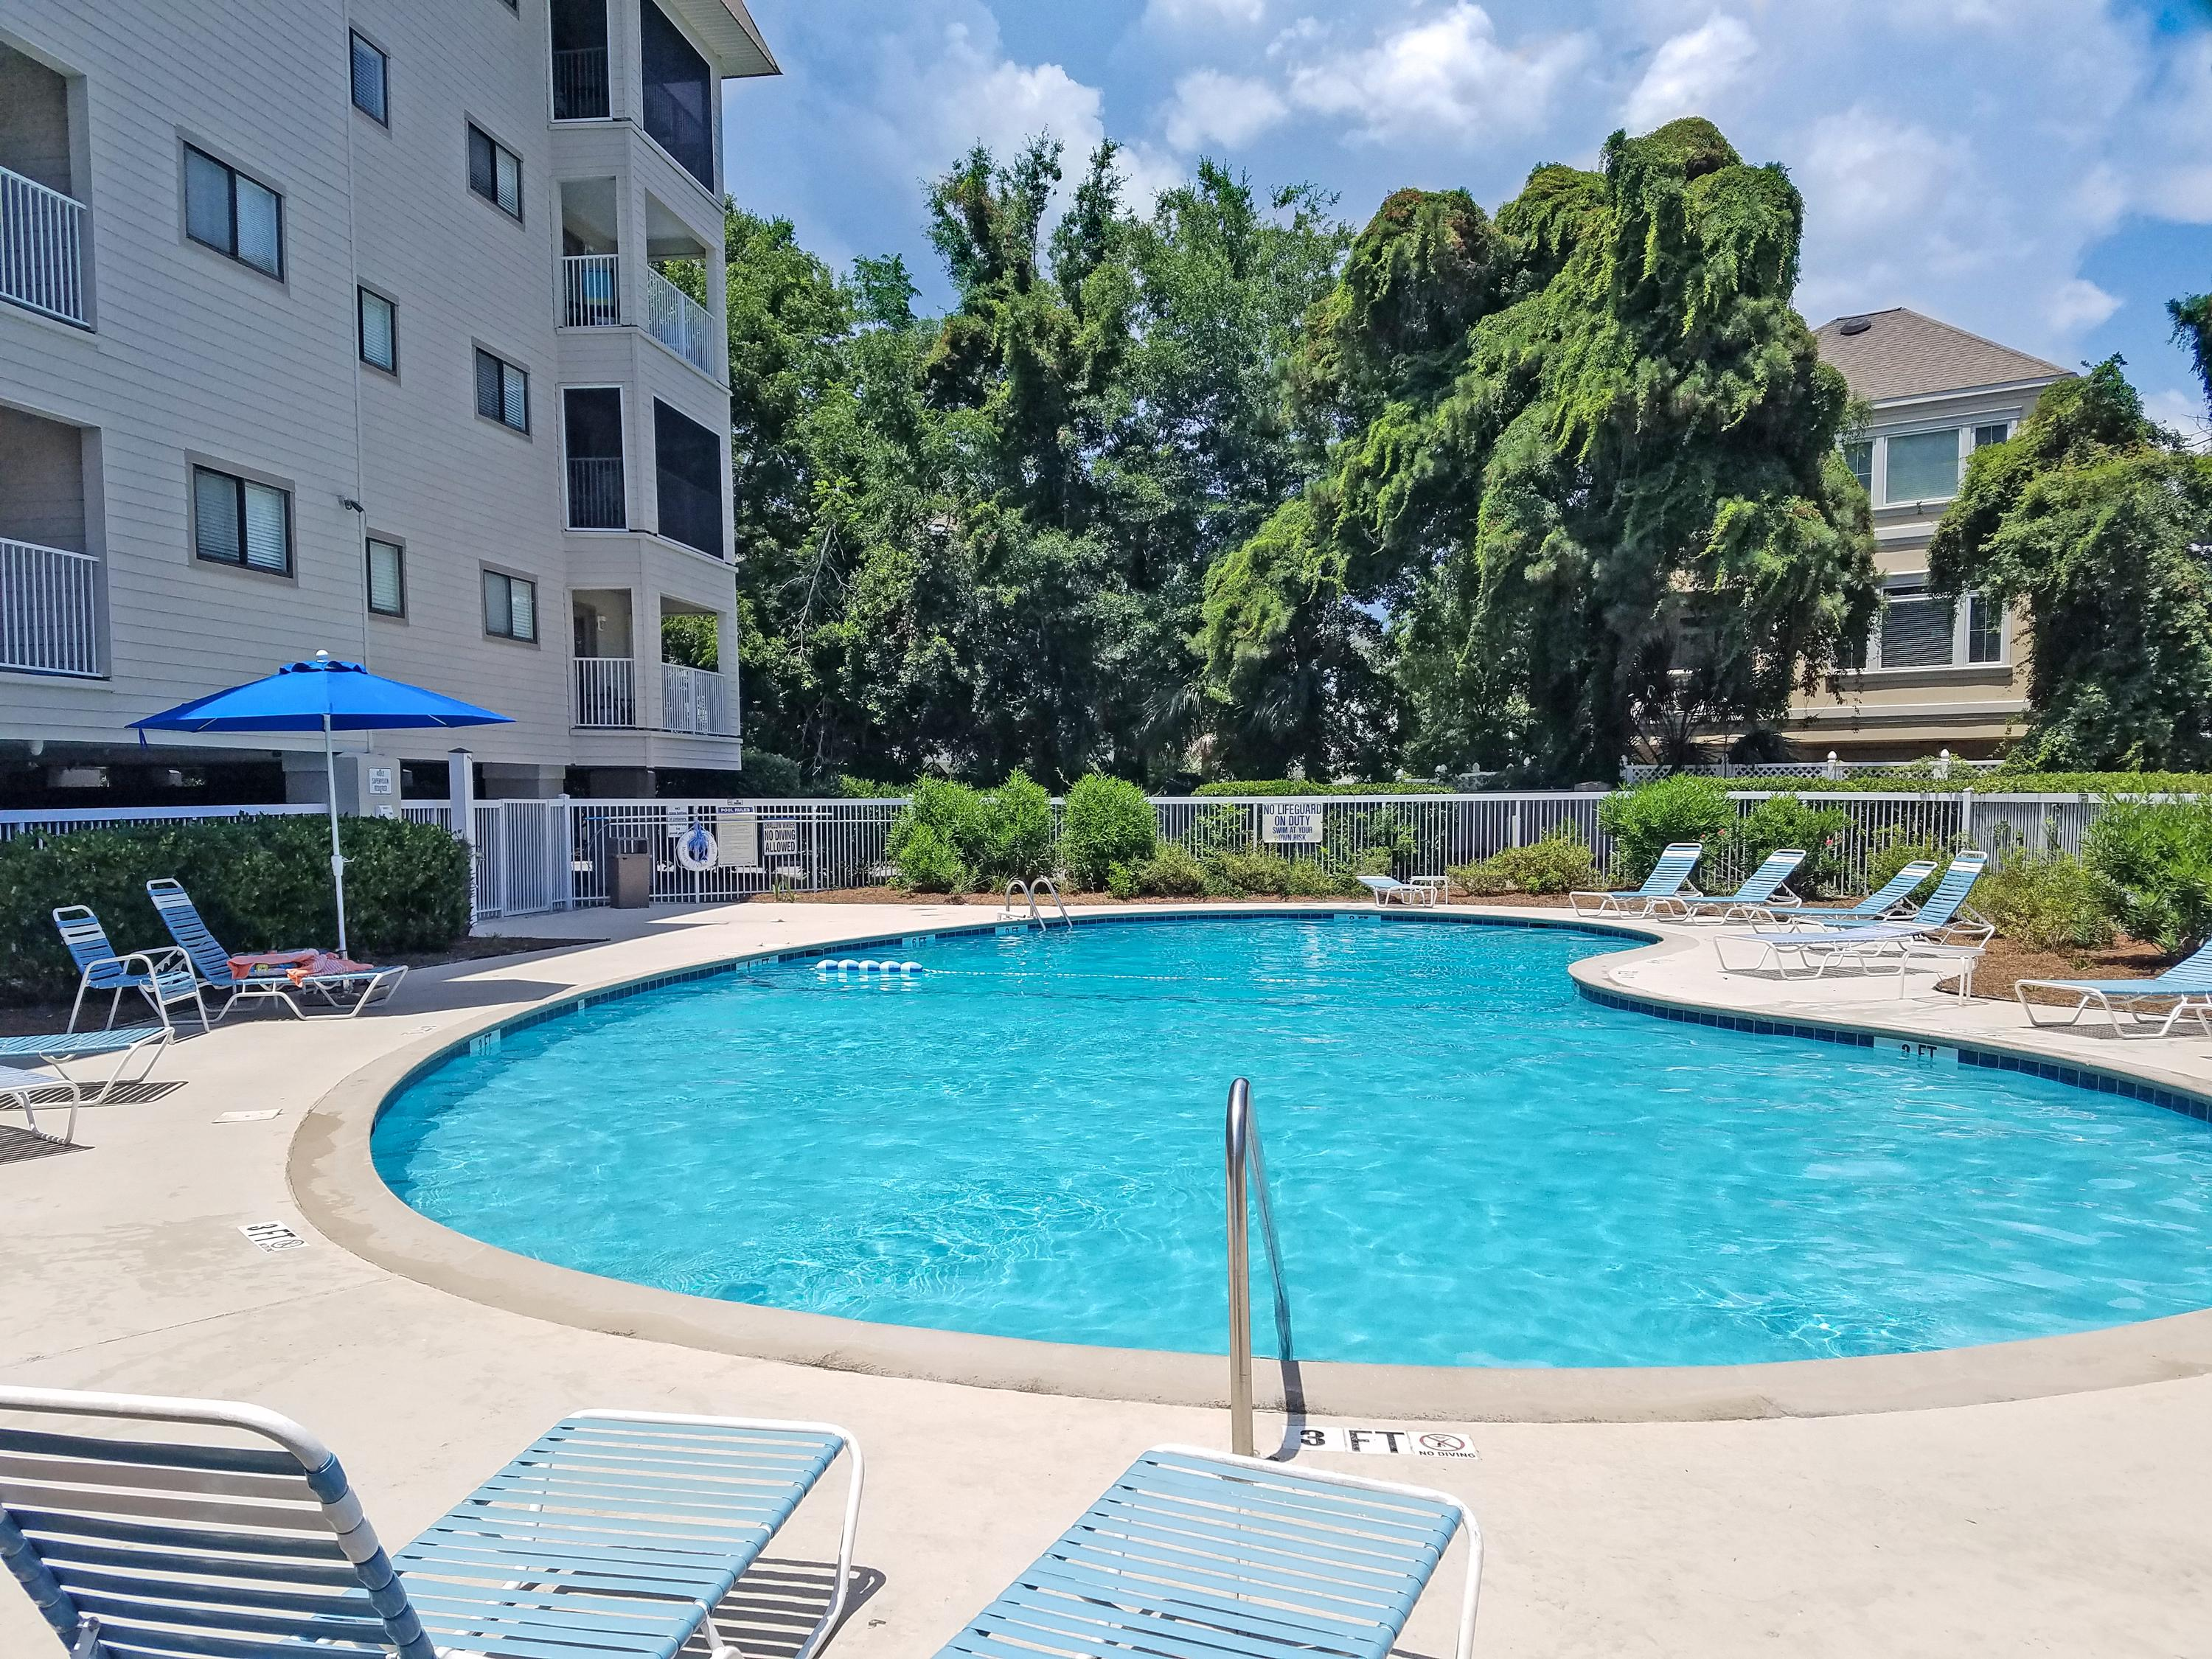 Your rental includes access to 2 seasonal outdoor pools.